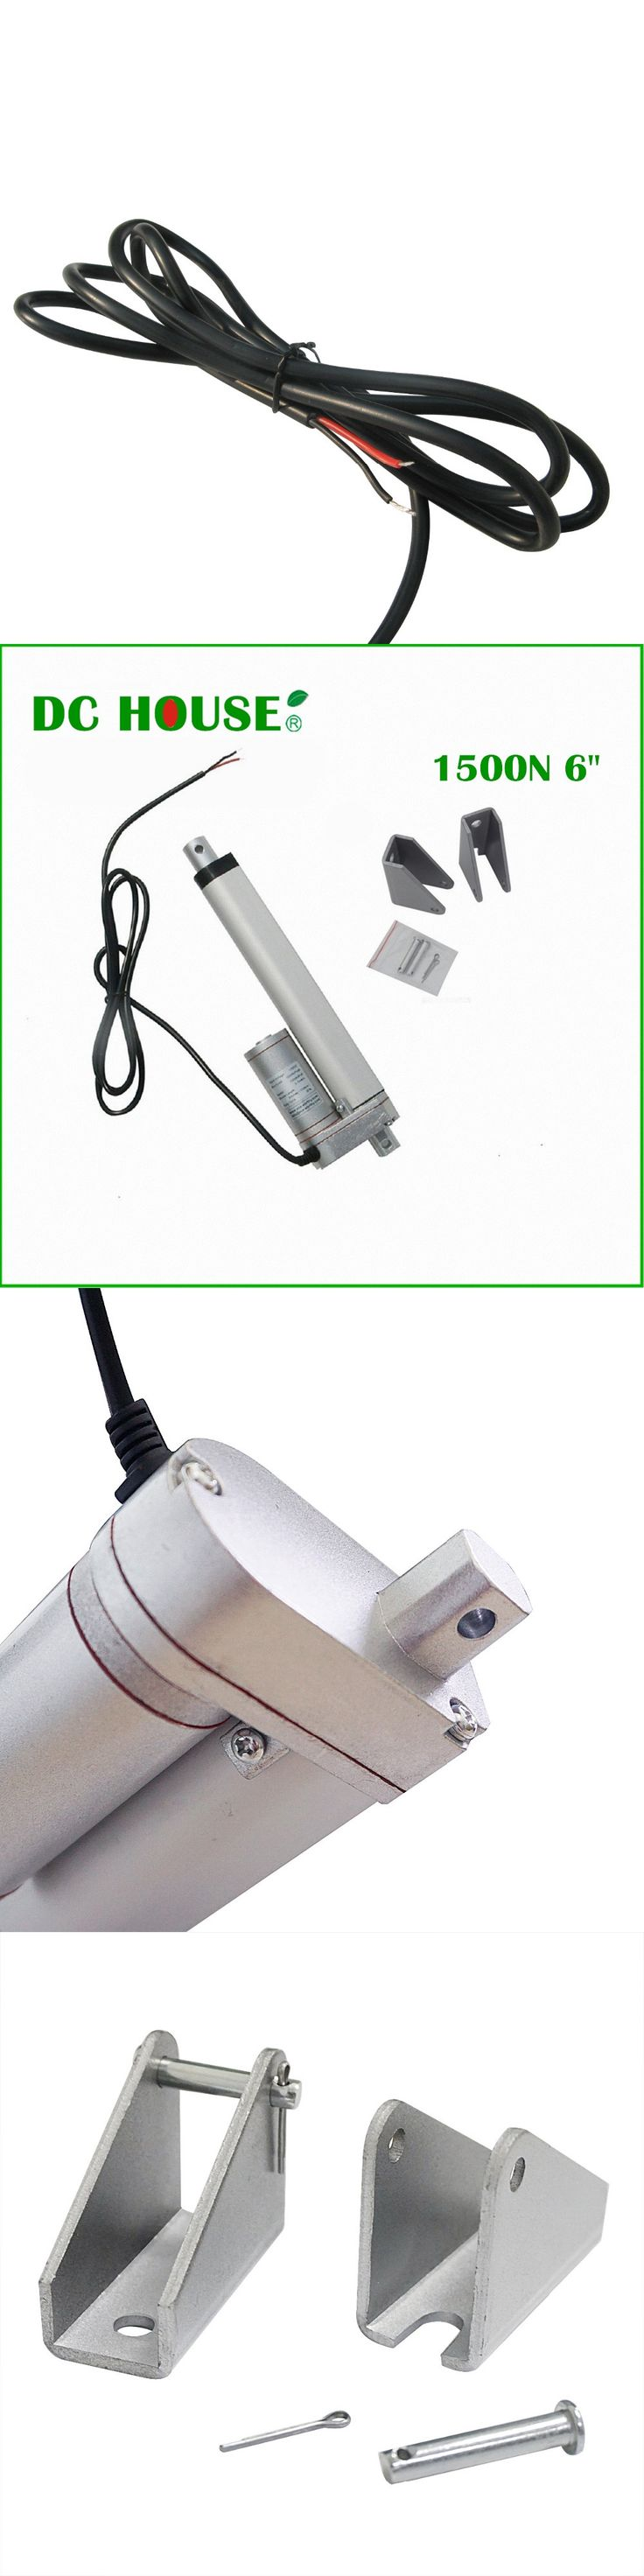 DC HOUSE 6inch 12V 5.7mm/s Solar Tracker 150mm 15000N  Linear Actuator multi-purpose Linear Actuator &  Mounting Brackets